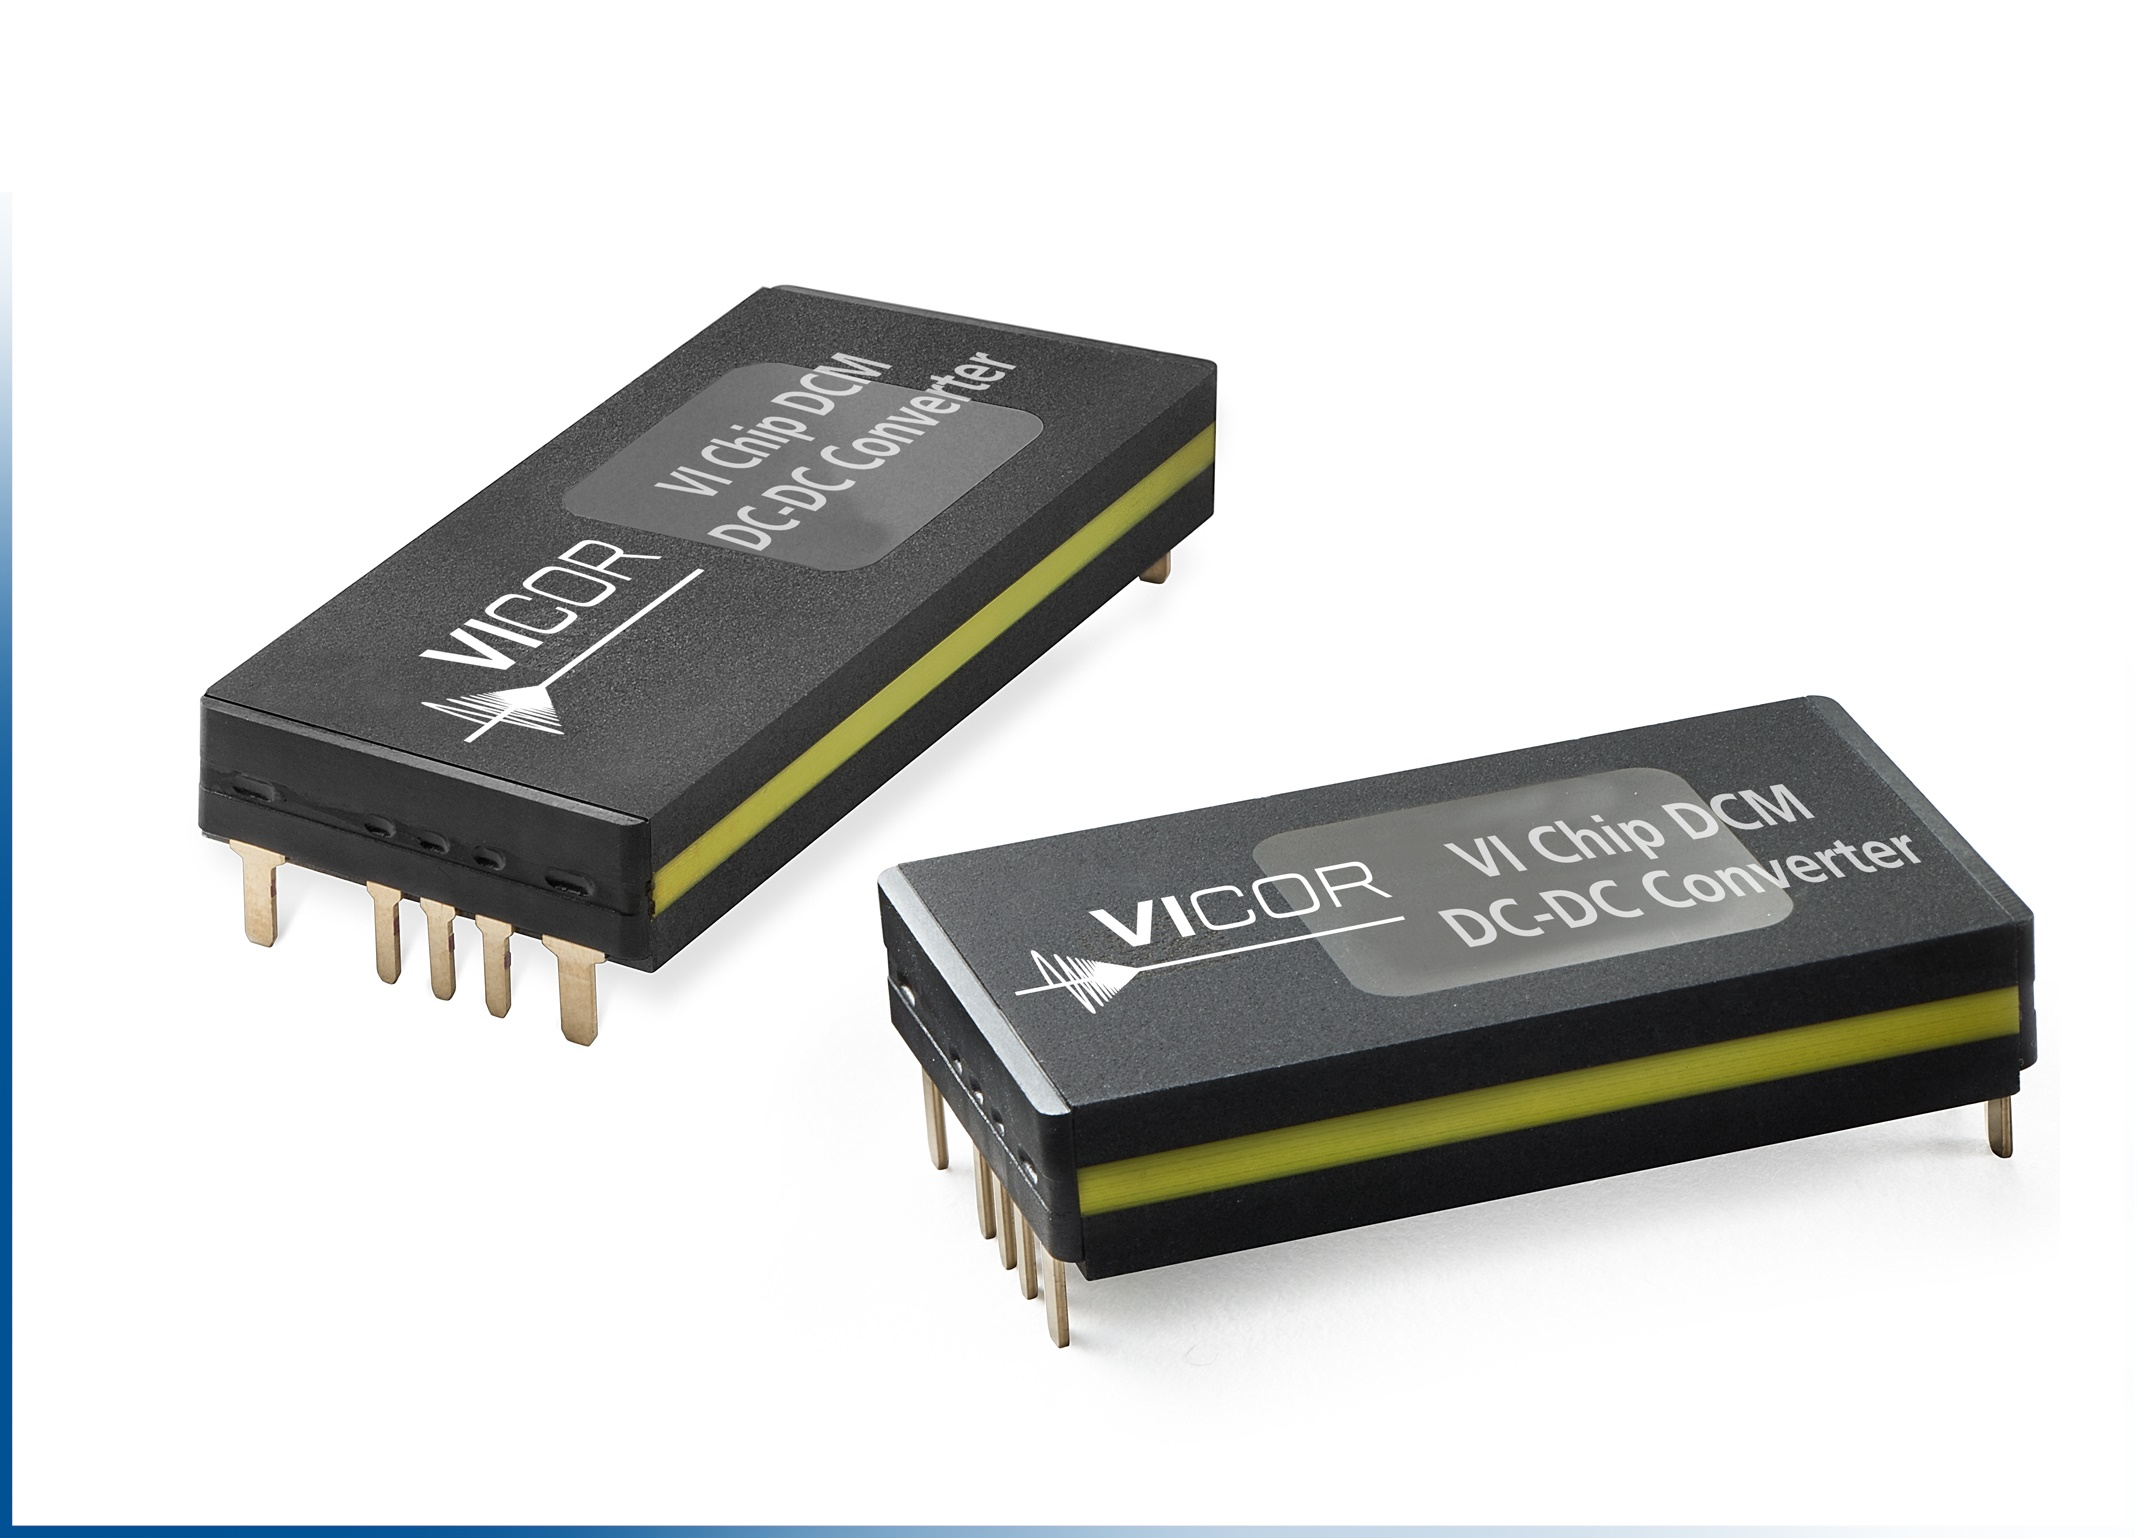 DC-DC Converter Modules in ChiP Packages Feature �1% Regulation